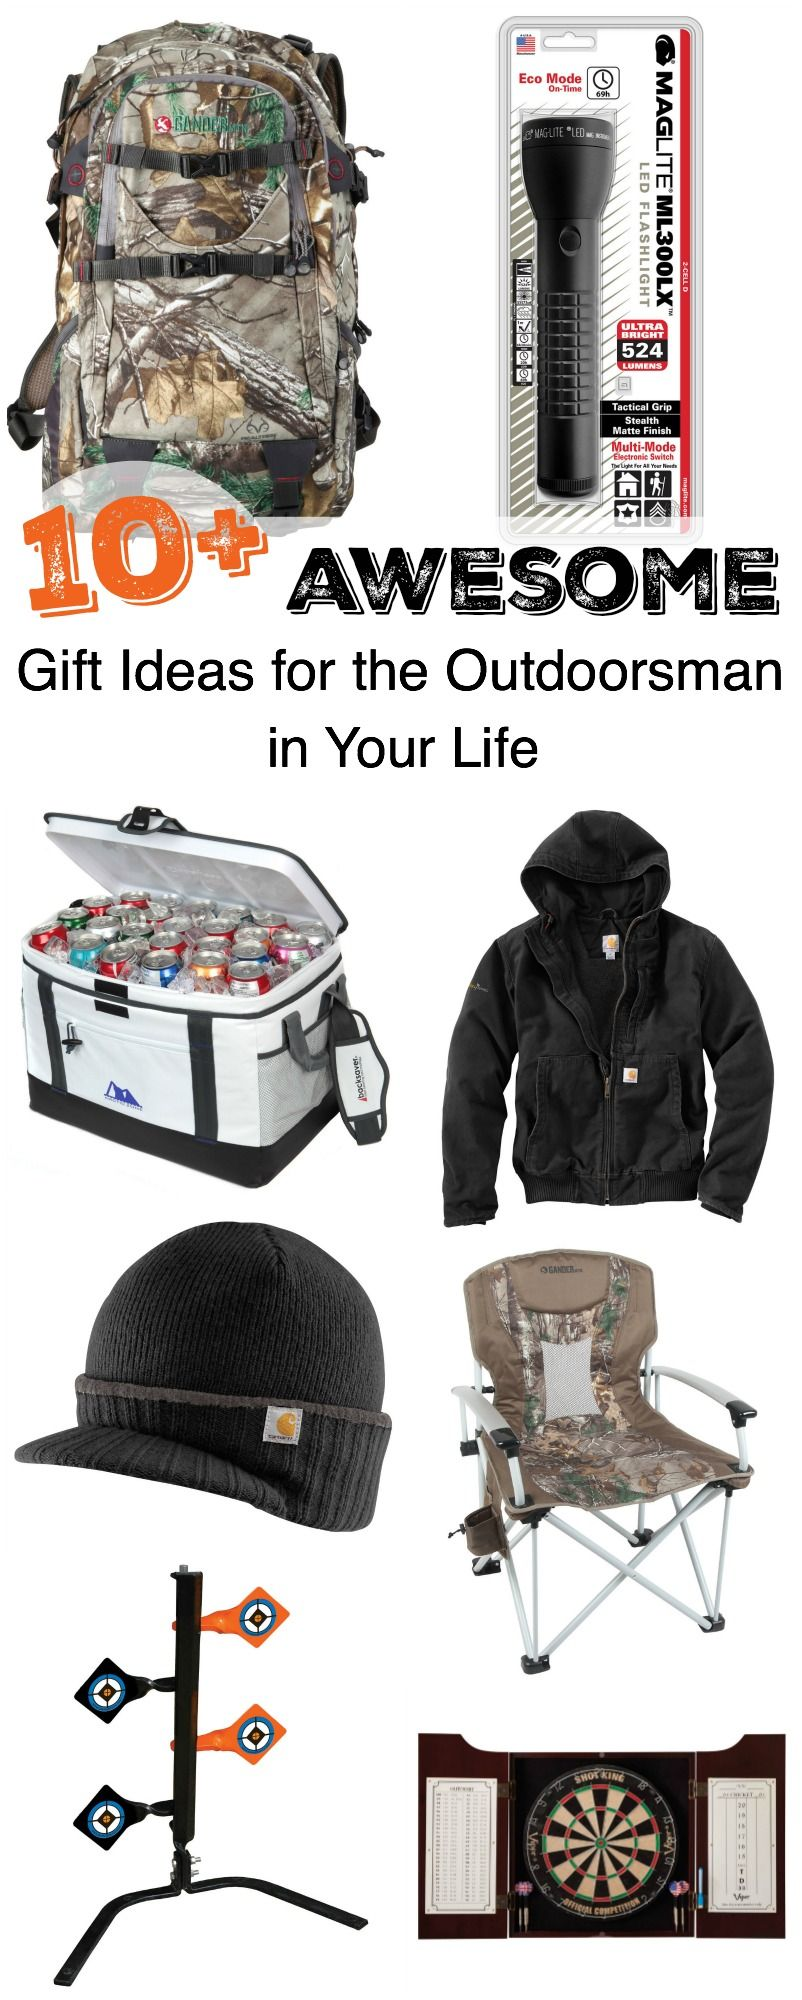 Exceptional Christmas Gift Ideas For Outdoorsmen Part - 6: 10 Awesome Gift Ideas For The Outdoorsman In Your Life